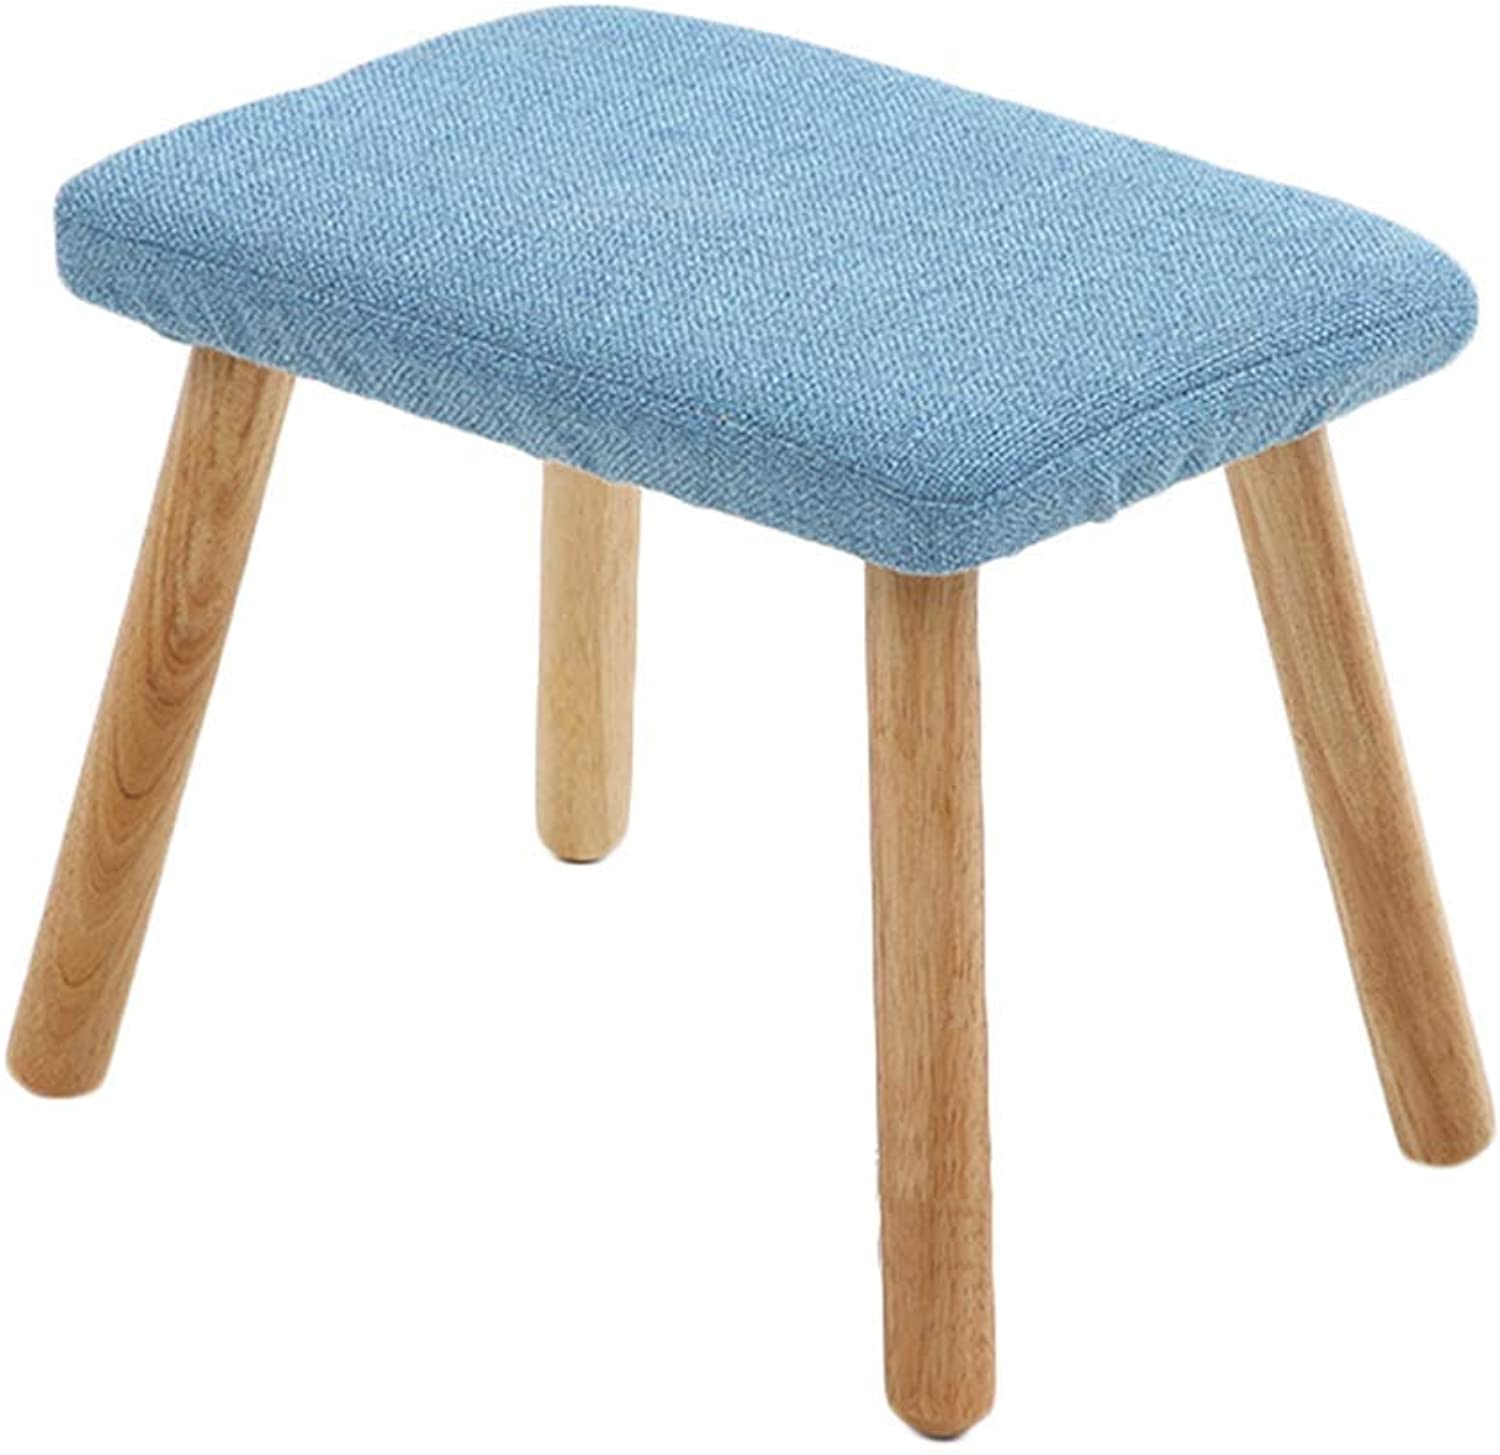 RMJAI Small seat shoes Bench Solid Wood Living Room Bedroom Sofa Stool Linen Rectangle Footstools Wooden 4 Legs 13.3x10.6x11 Inches (color   bluee)